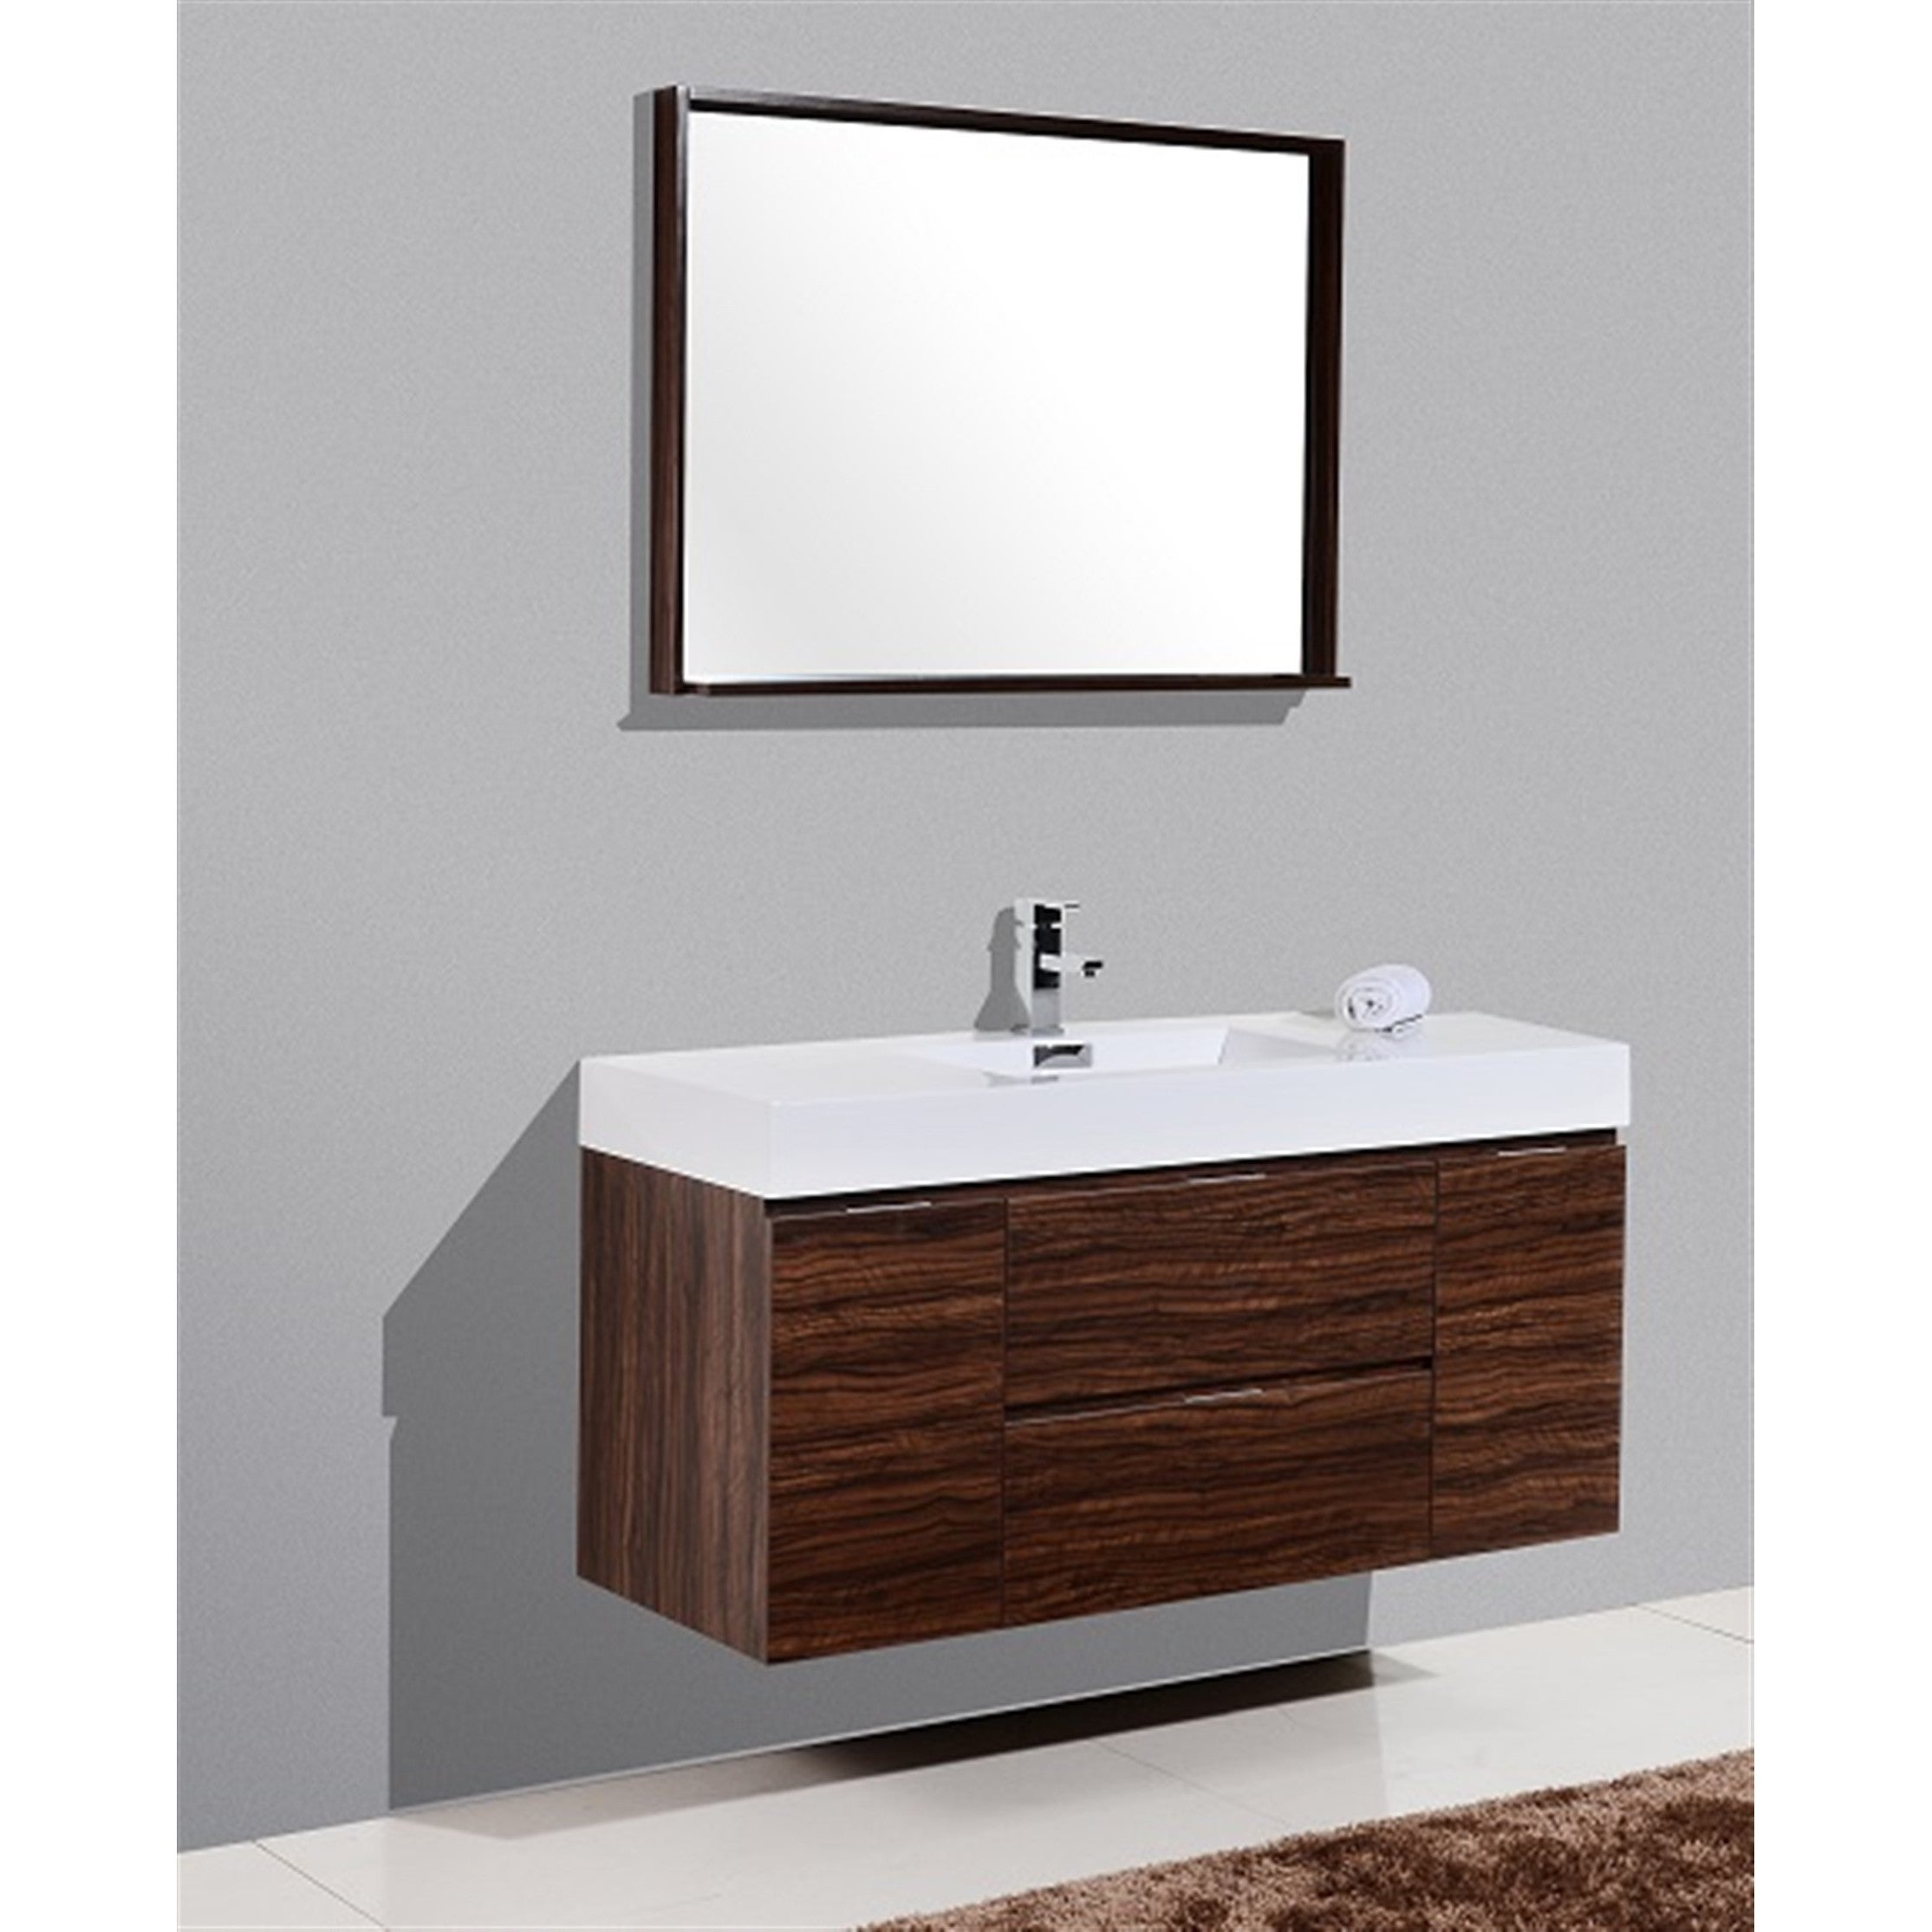 acrylic eviva shop smile set vanity a sink ds oak integrated modern white fs double with bathroom